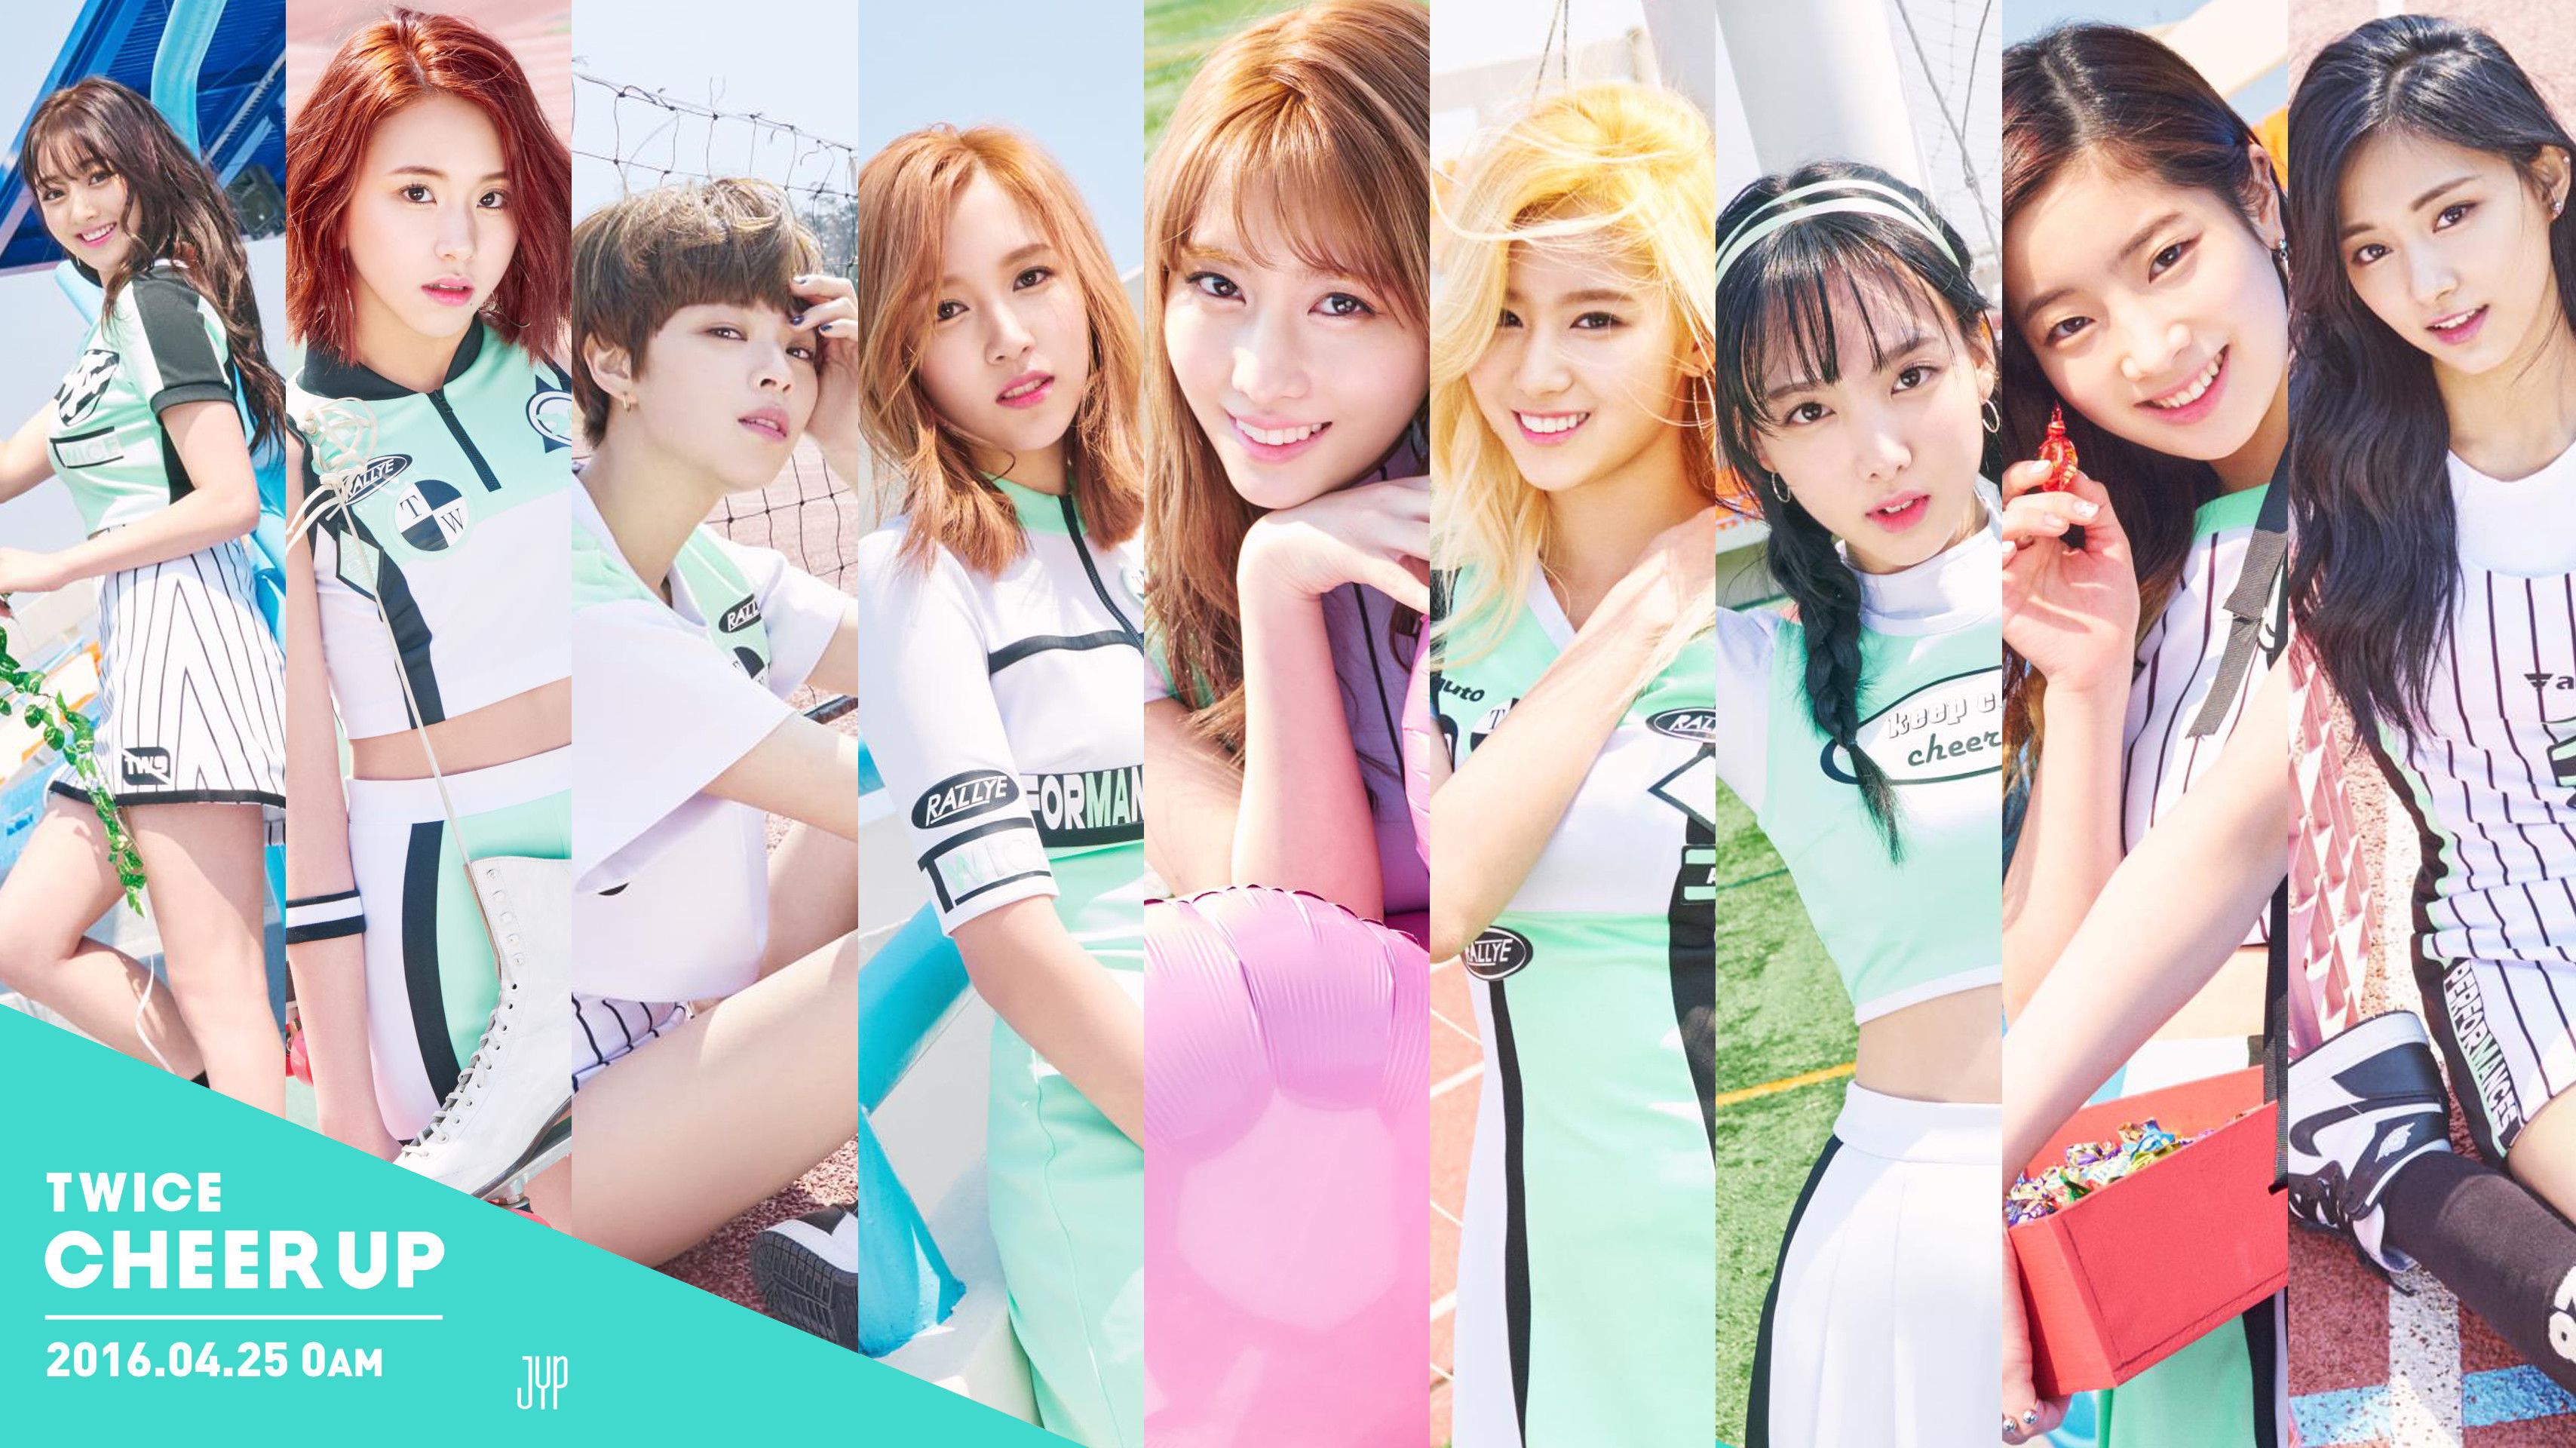 Twice Wallpapers Wallpapertag